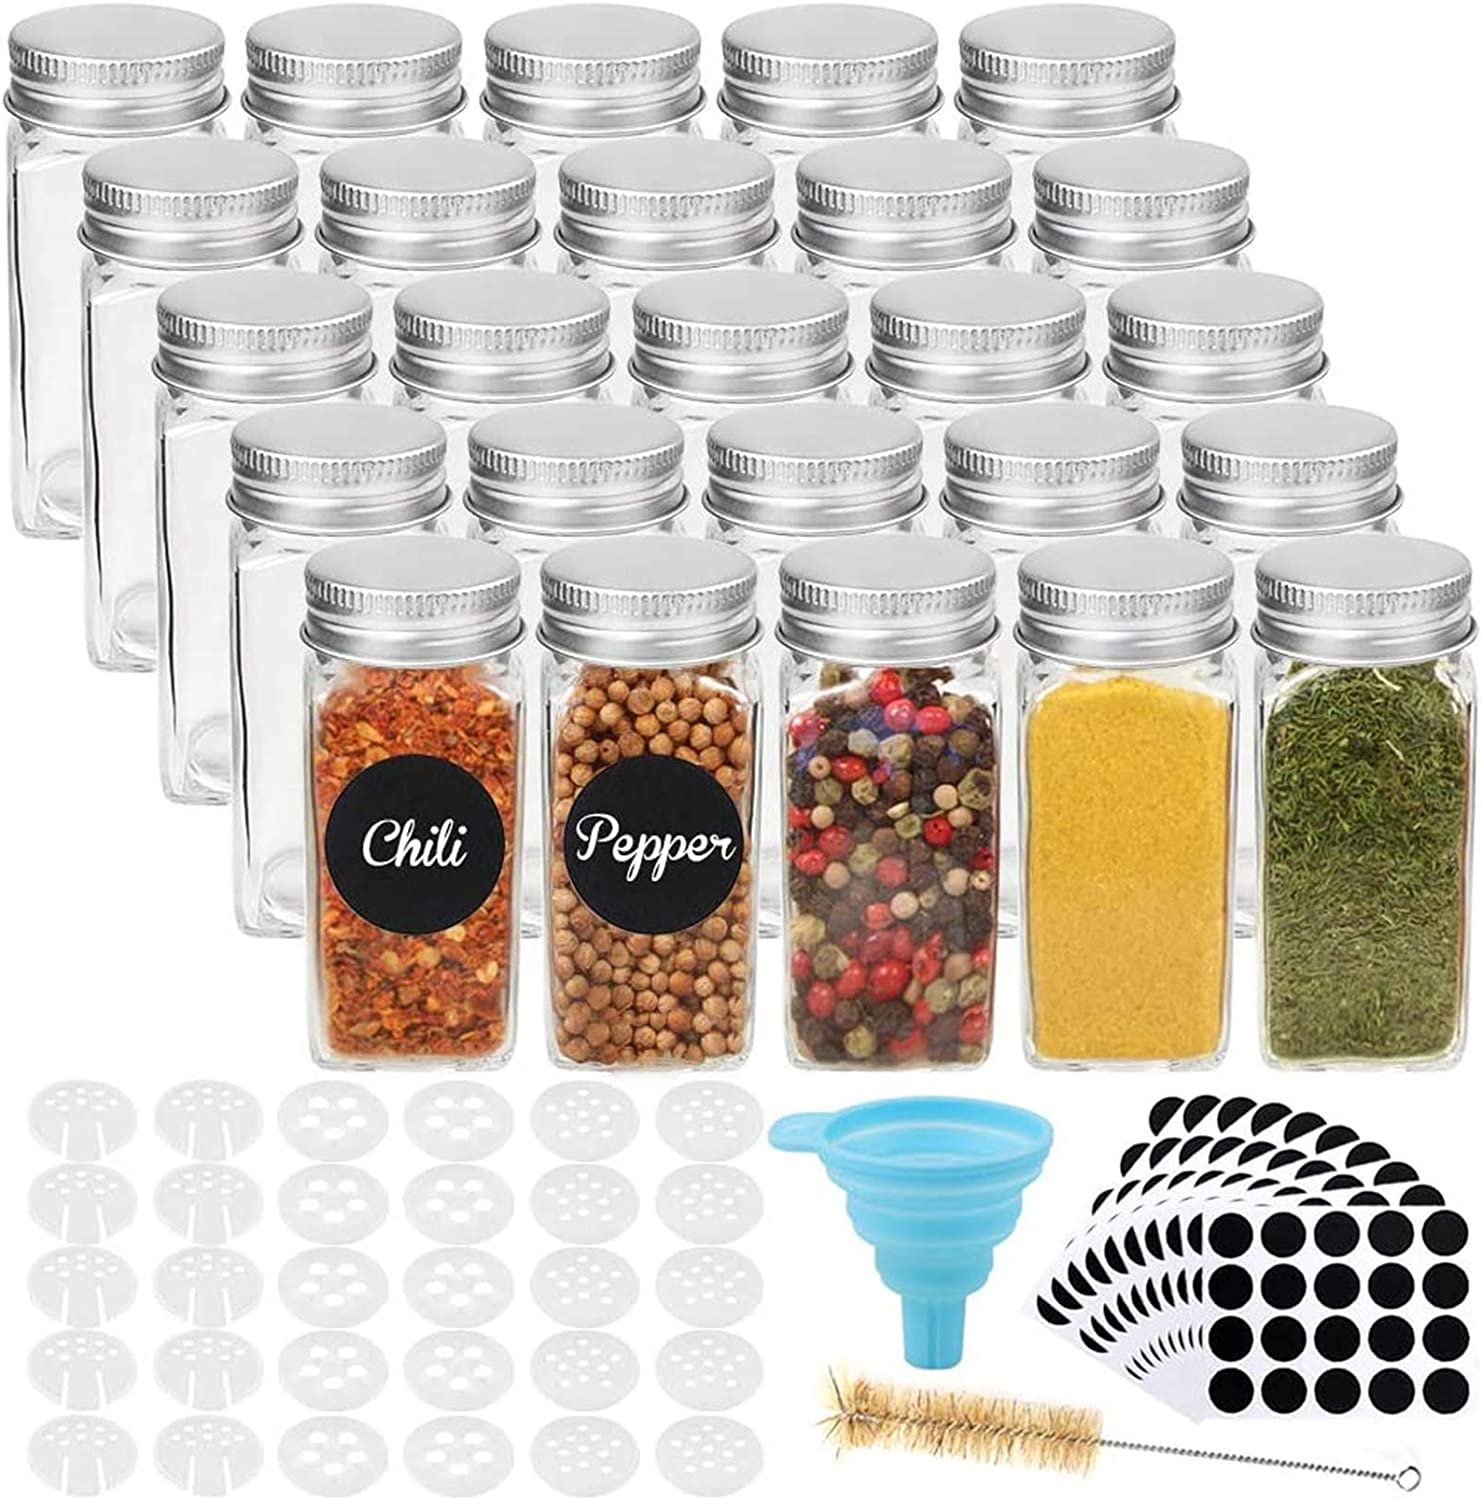 CUCUMI 25pcs 4oz Glass Spice Jars Spice Bottles, Square Empty Spice Containers with 30pcs Shaker Lids 200pcs Blank Waterproof Labels Silicone Collapsible Funnel Test Tube Brush